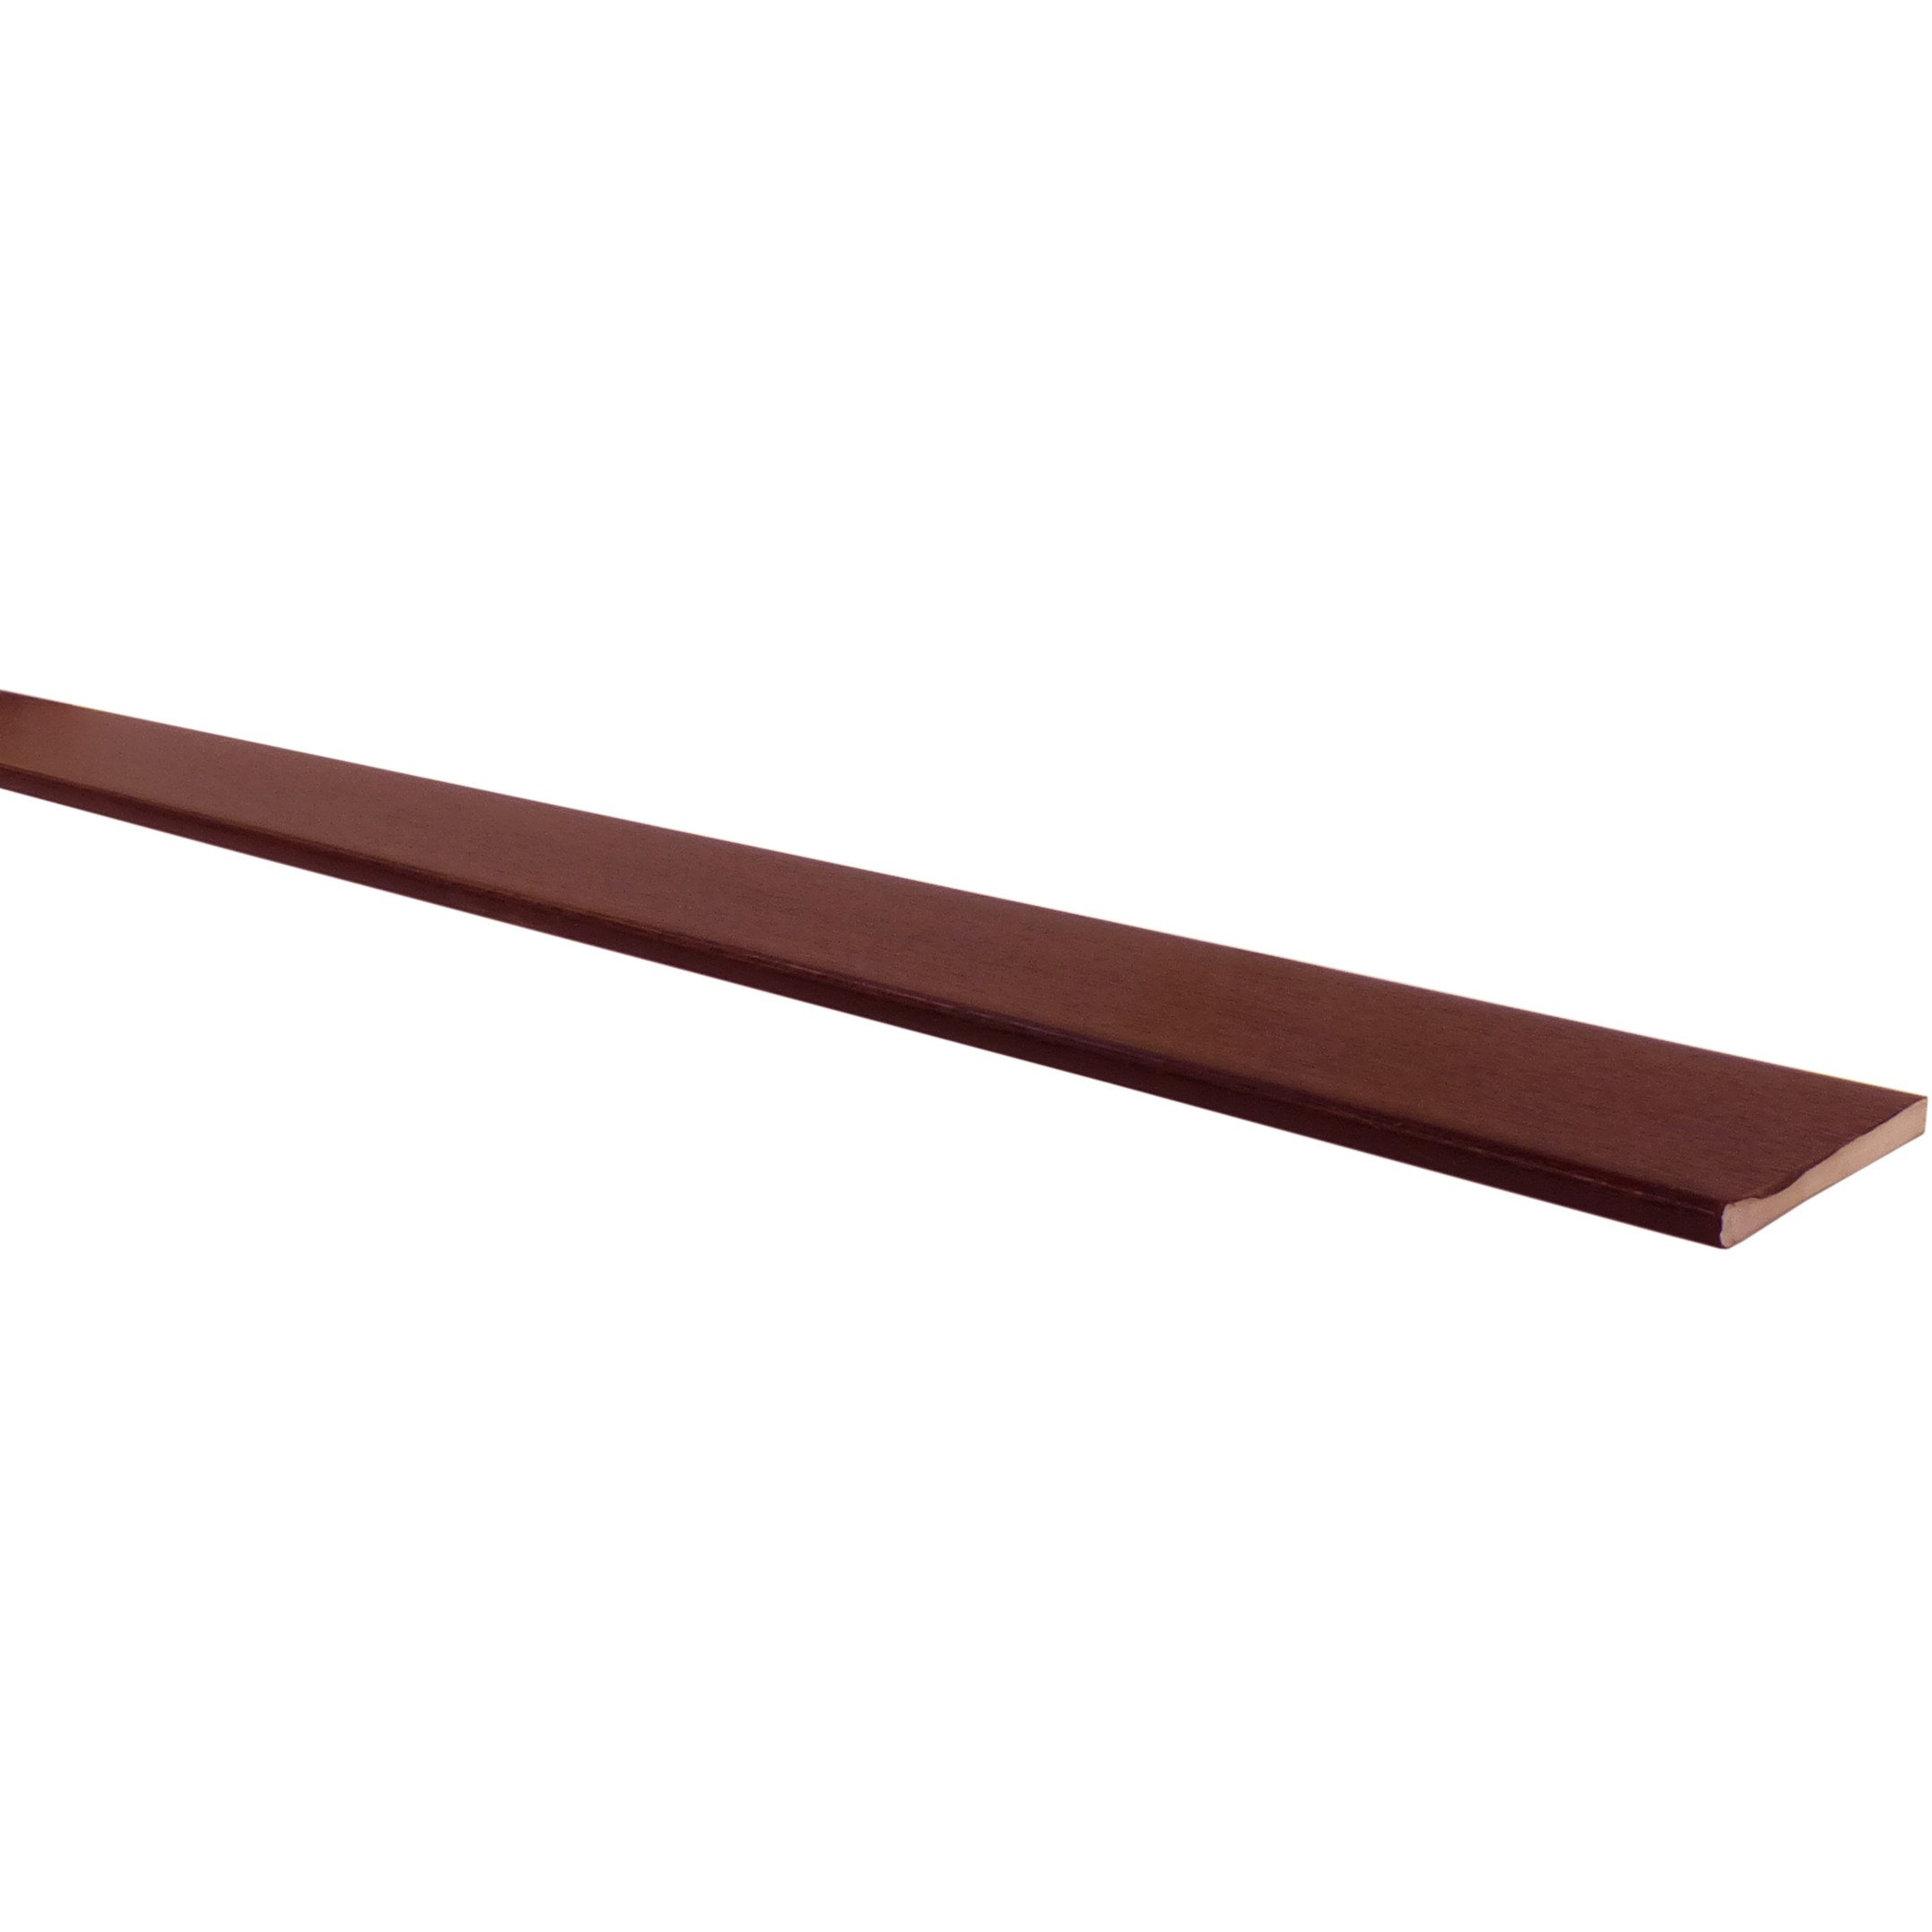 Freefoam 10mm Solid Soffit Board - Woodgrain Rosewood, 100mm, 5 metre